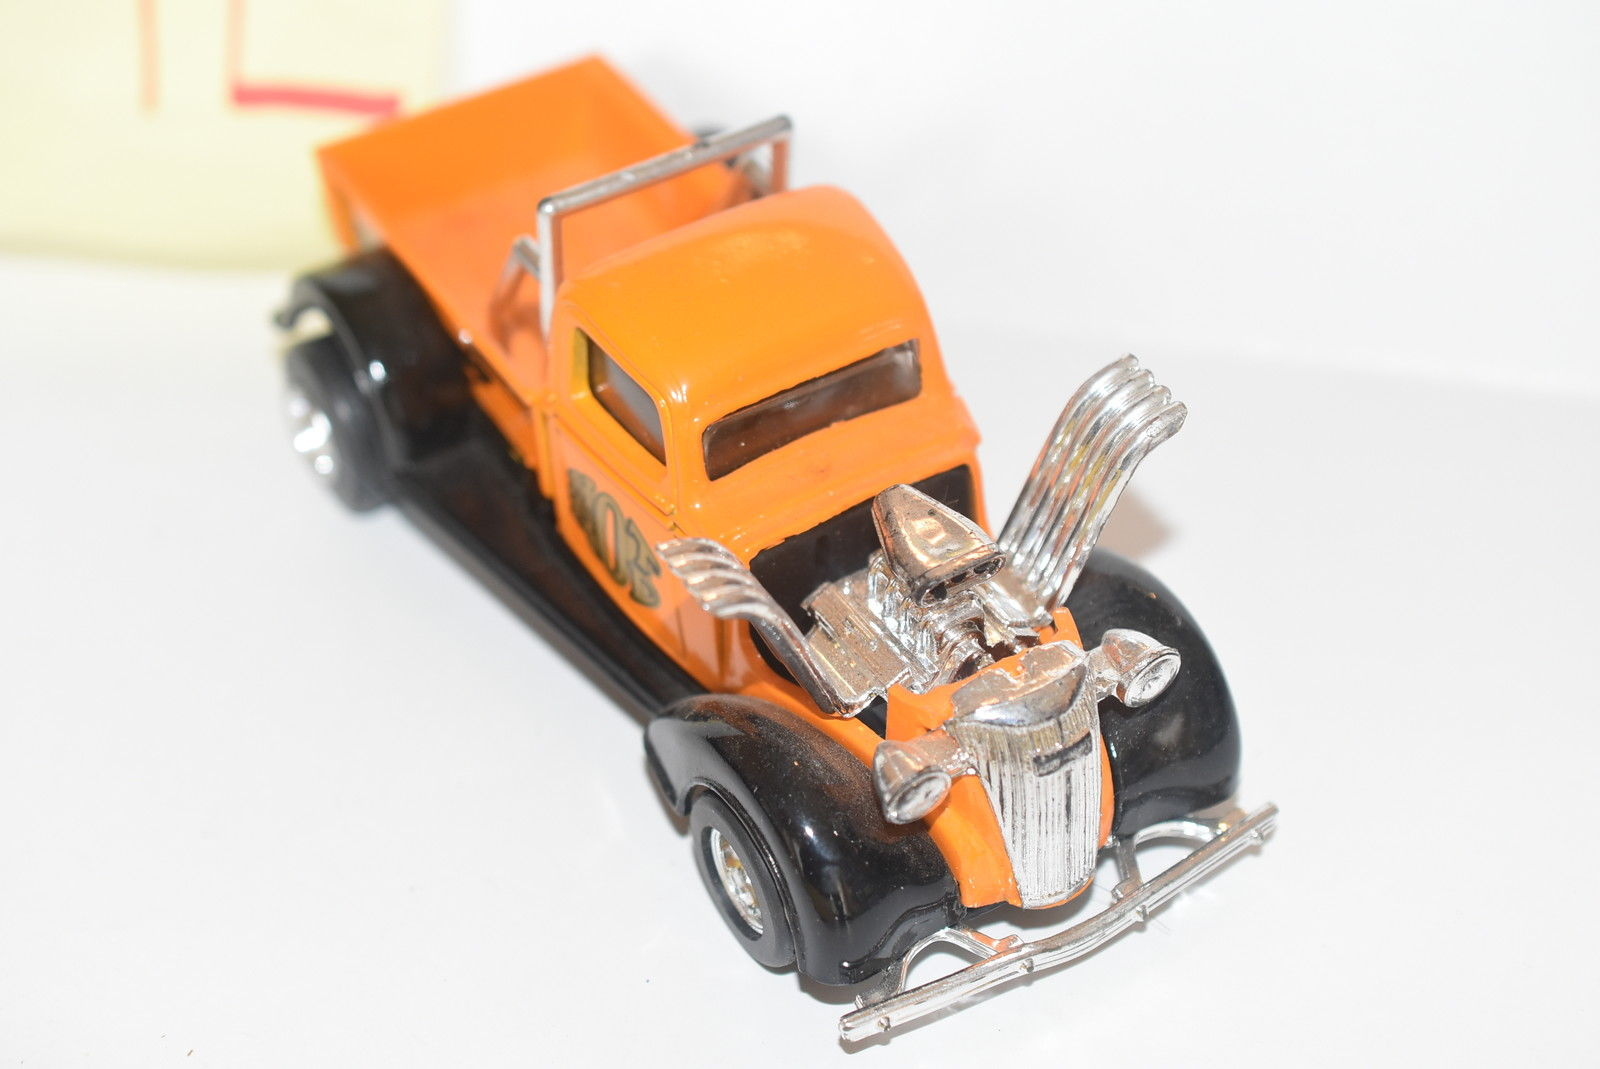 MAJORETTE HOT RODS PICK UP TRUCK ORANGE SCALE 1/32 - LOOSE